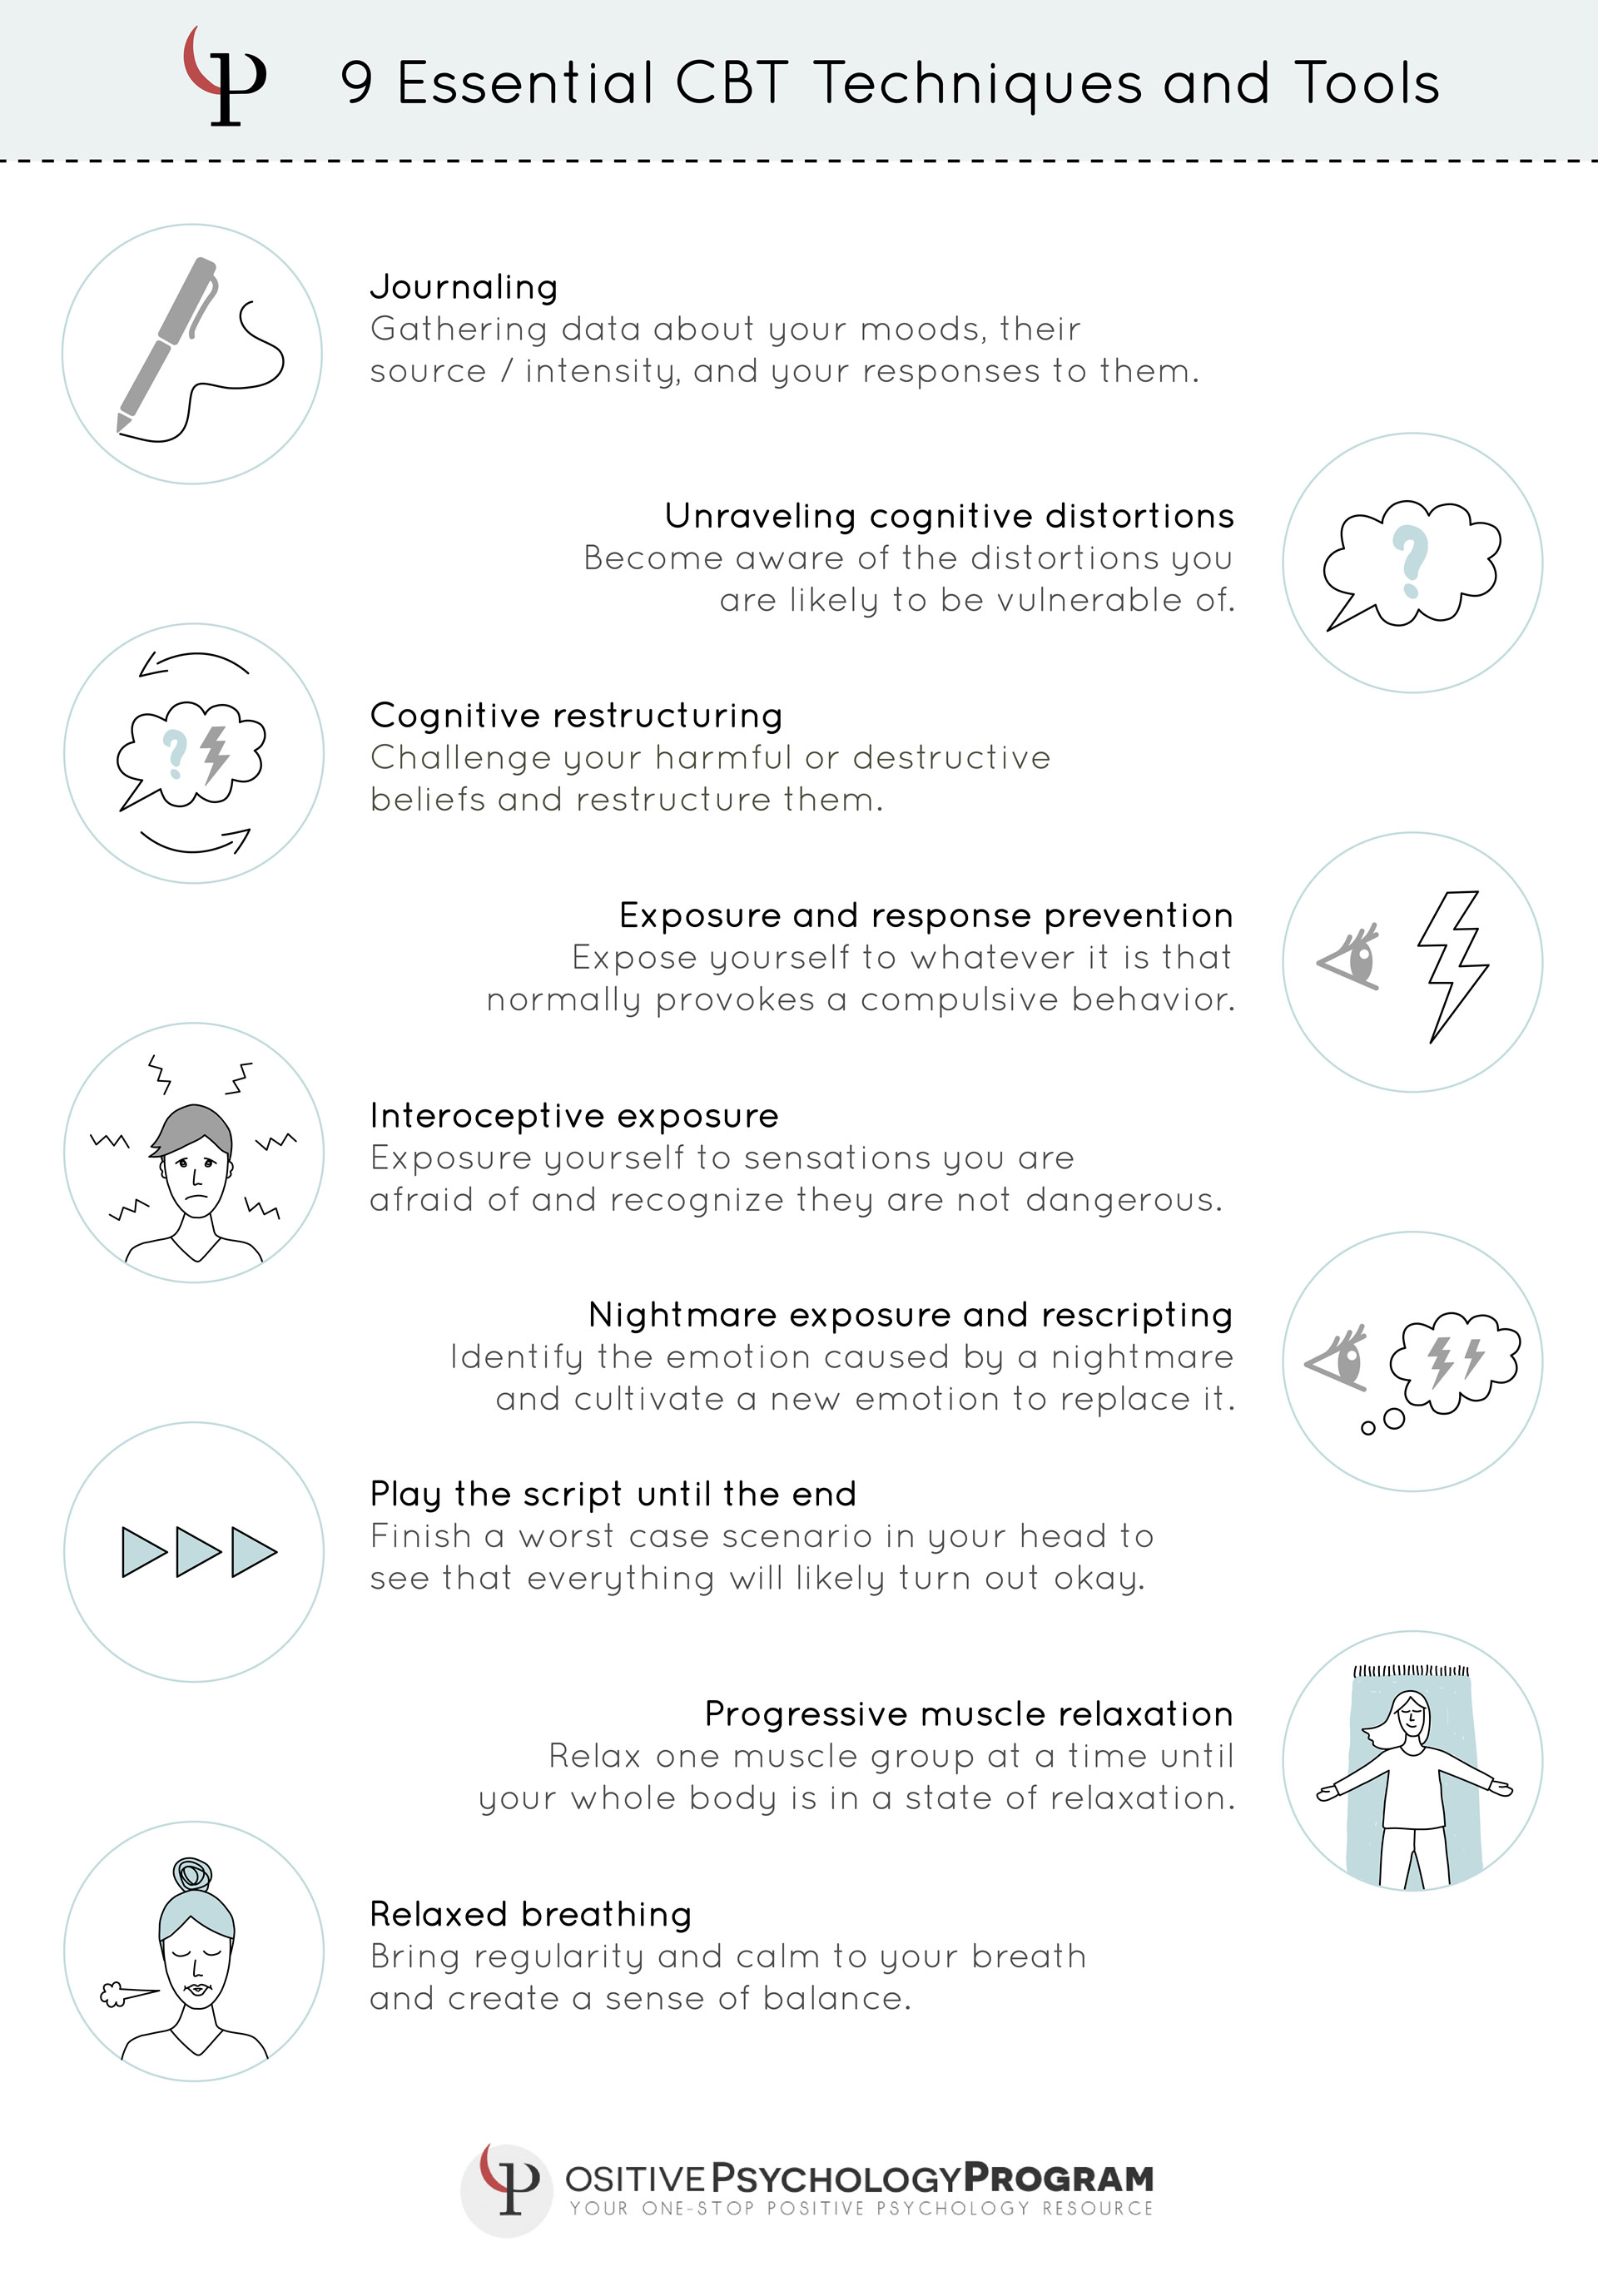 25 Cbt Techniques And Worksheets For Cognitive Behavioral Therapy | Printable Mental Health Worksheets For Adults